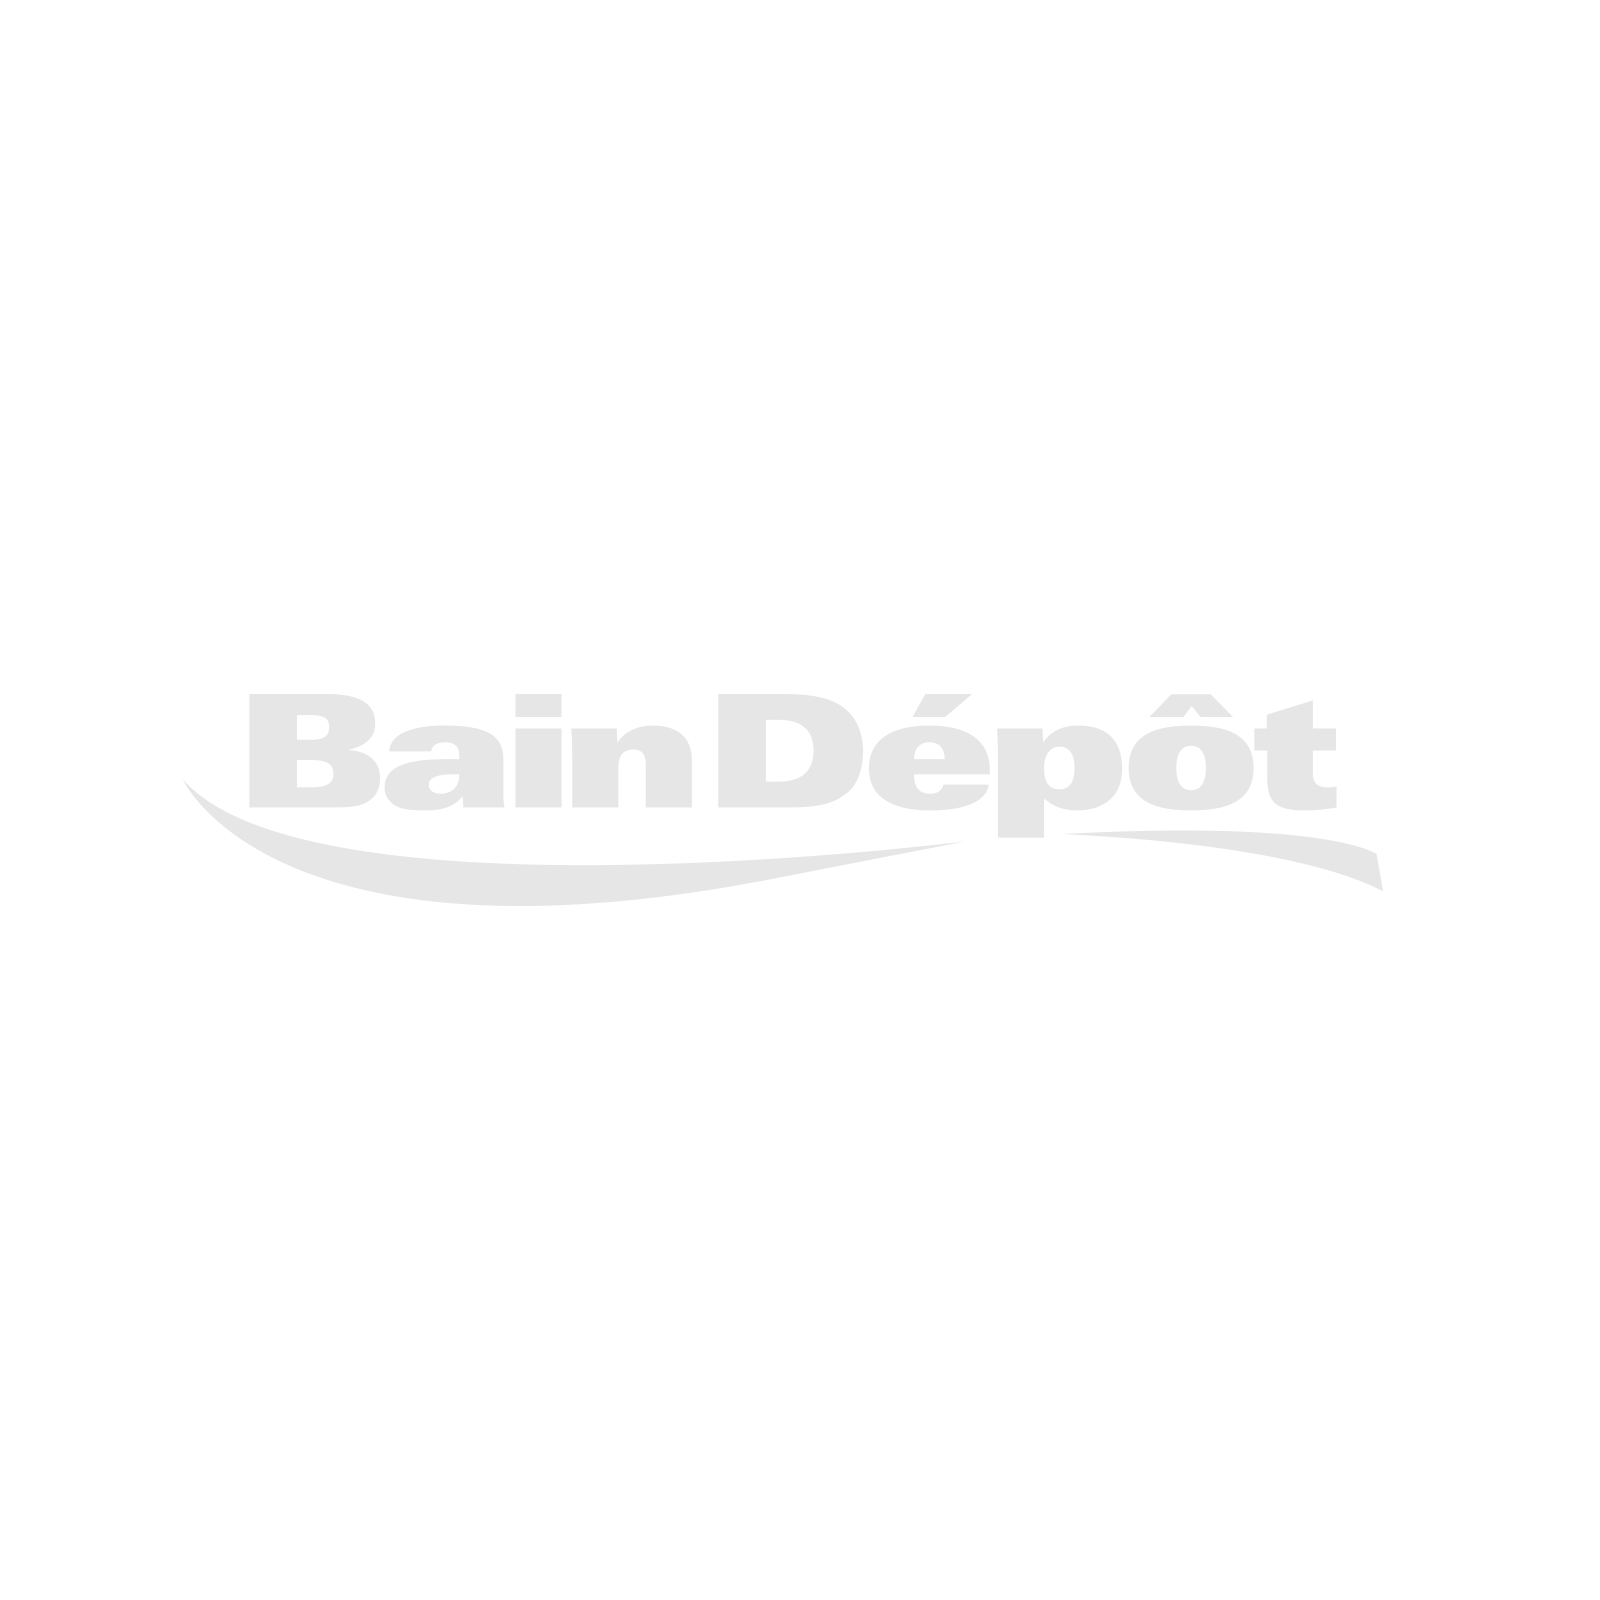 "Walk-in shower with 36"" front panel and 12"" swivel panel"